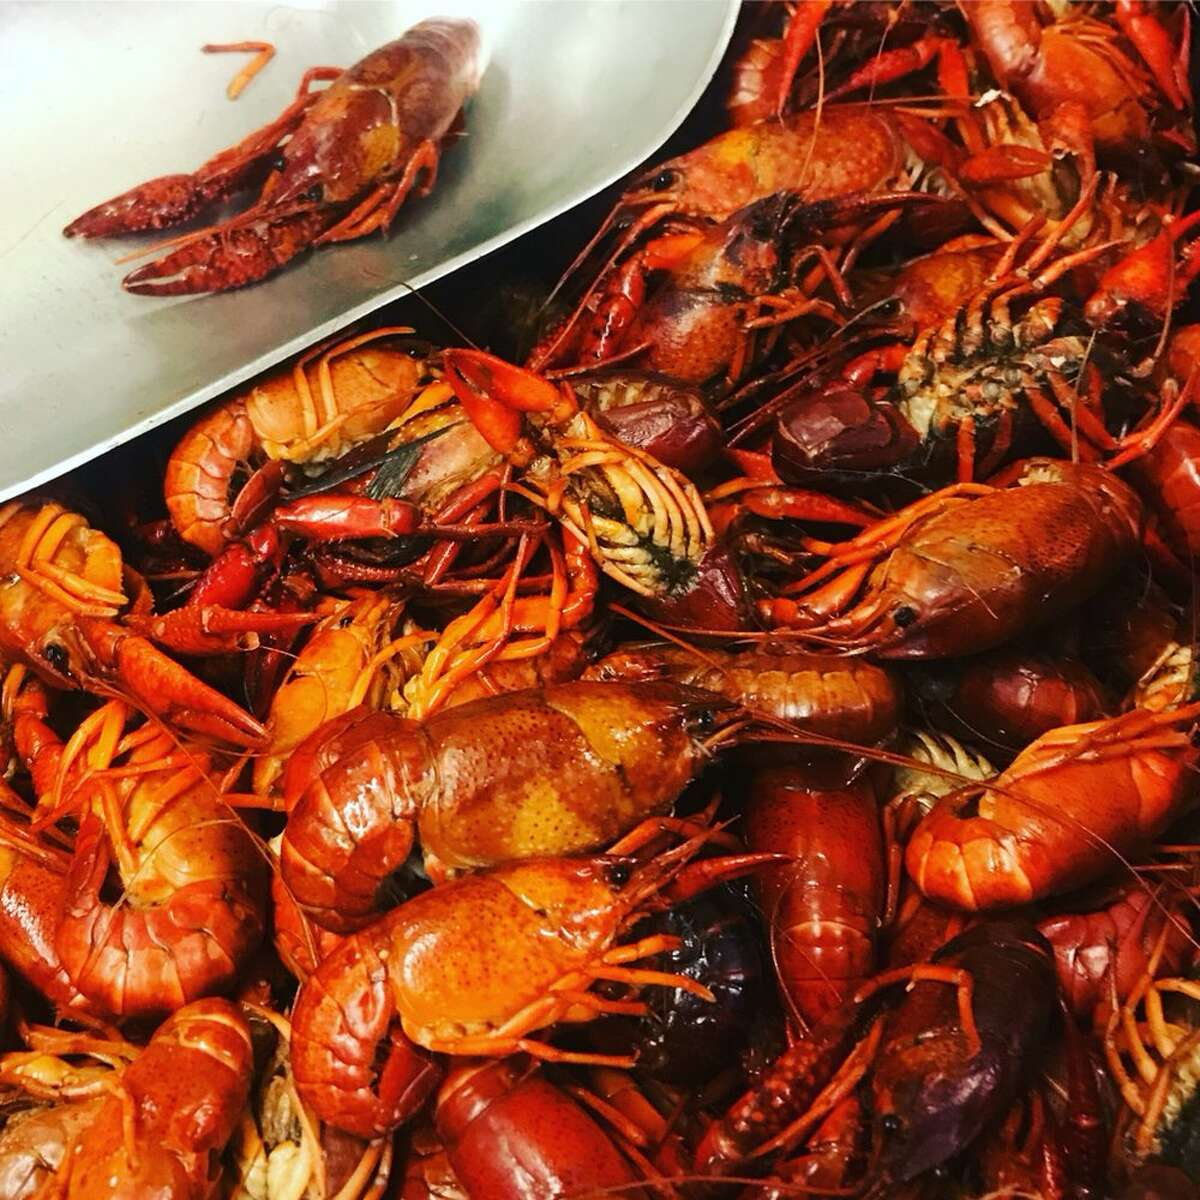 Casian Crawfish5314 Telephone Road, Houston713-360-7610Keri D's review:I have eaten here many time and not once was I disappointed- crawfish are seasoned very well - we like the